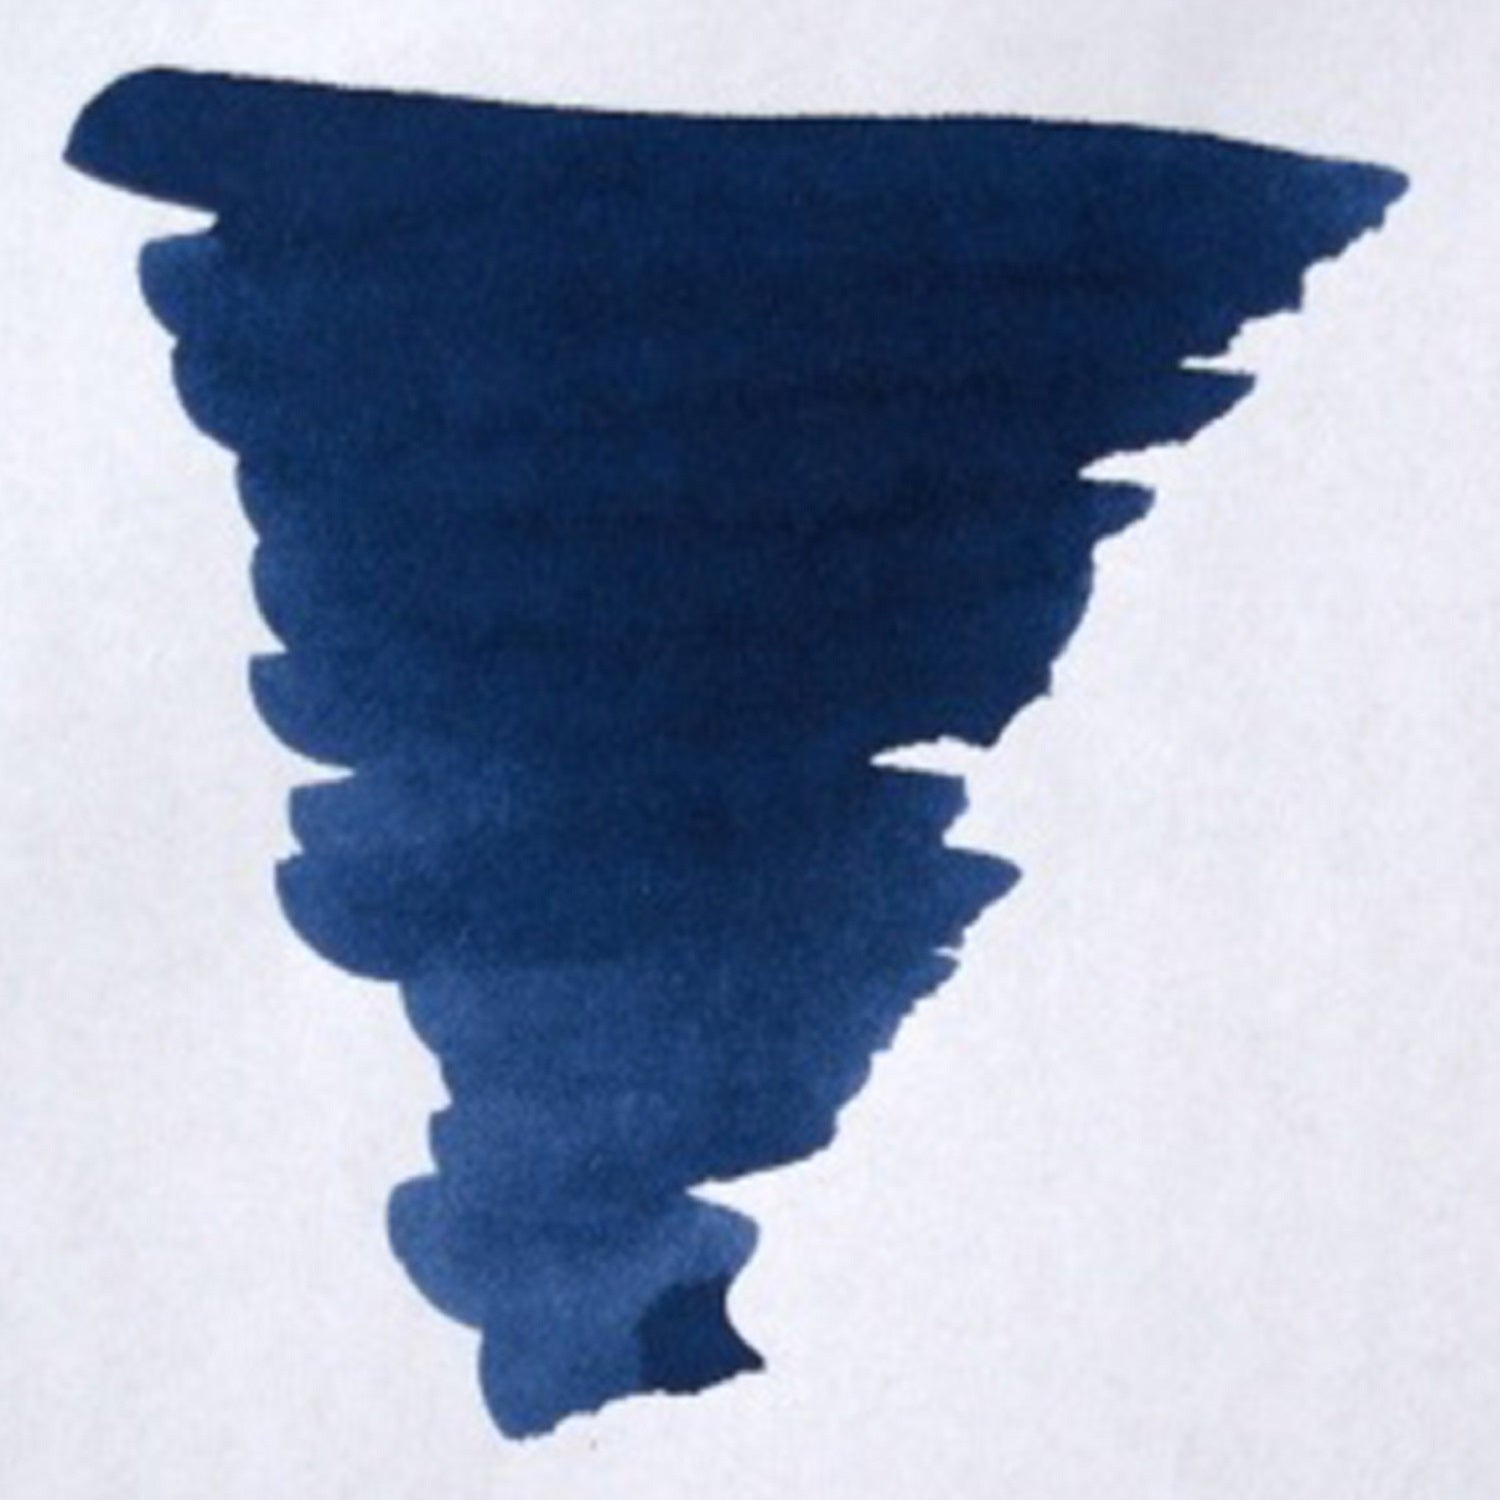 DIAMINE Ink 80ml Bottle BLUE-BLACK SHADES